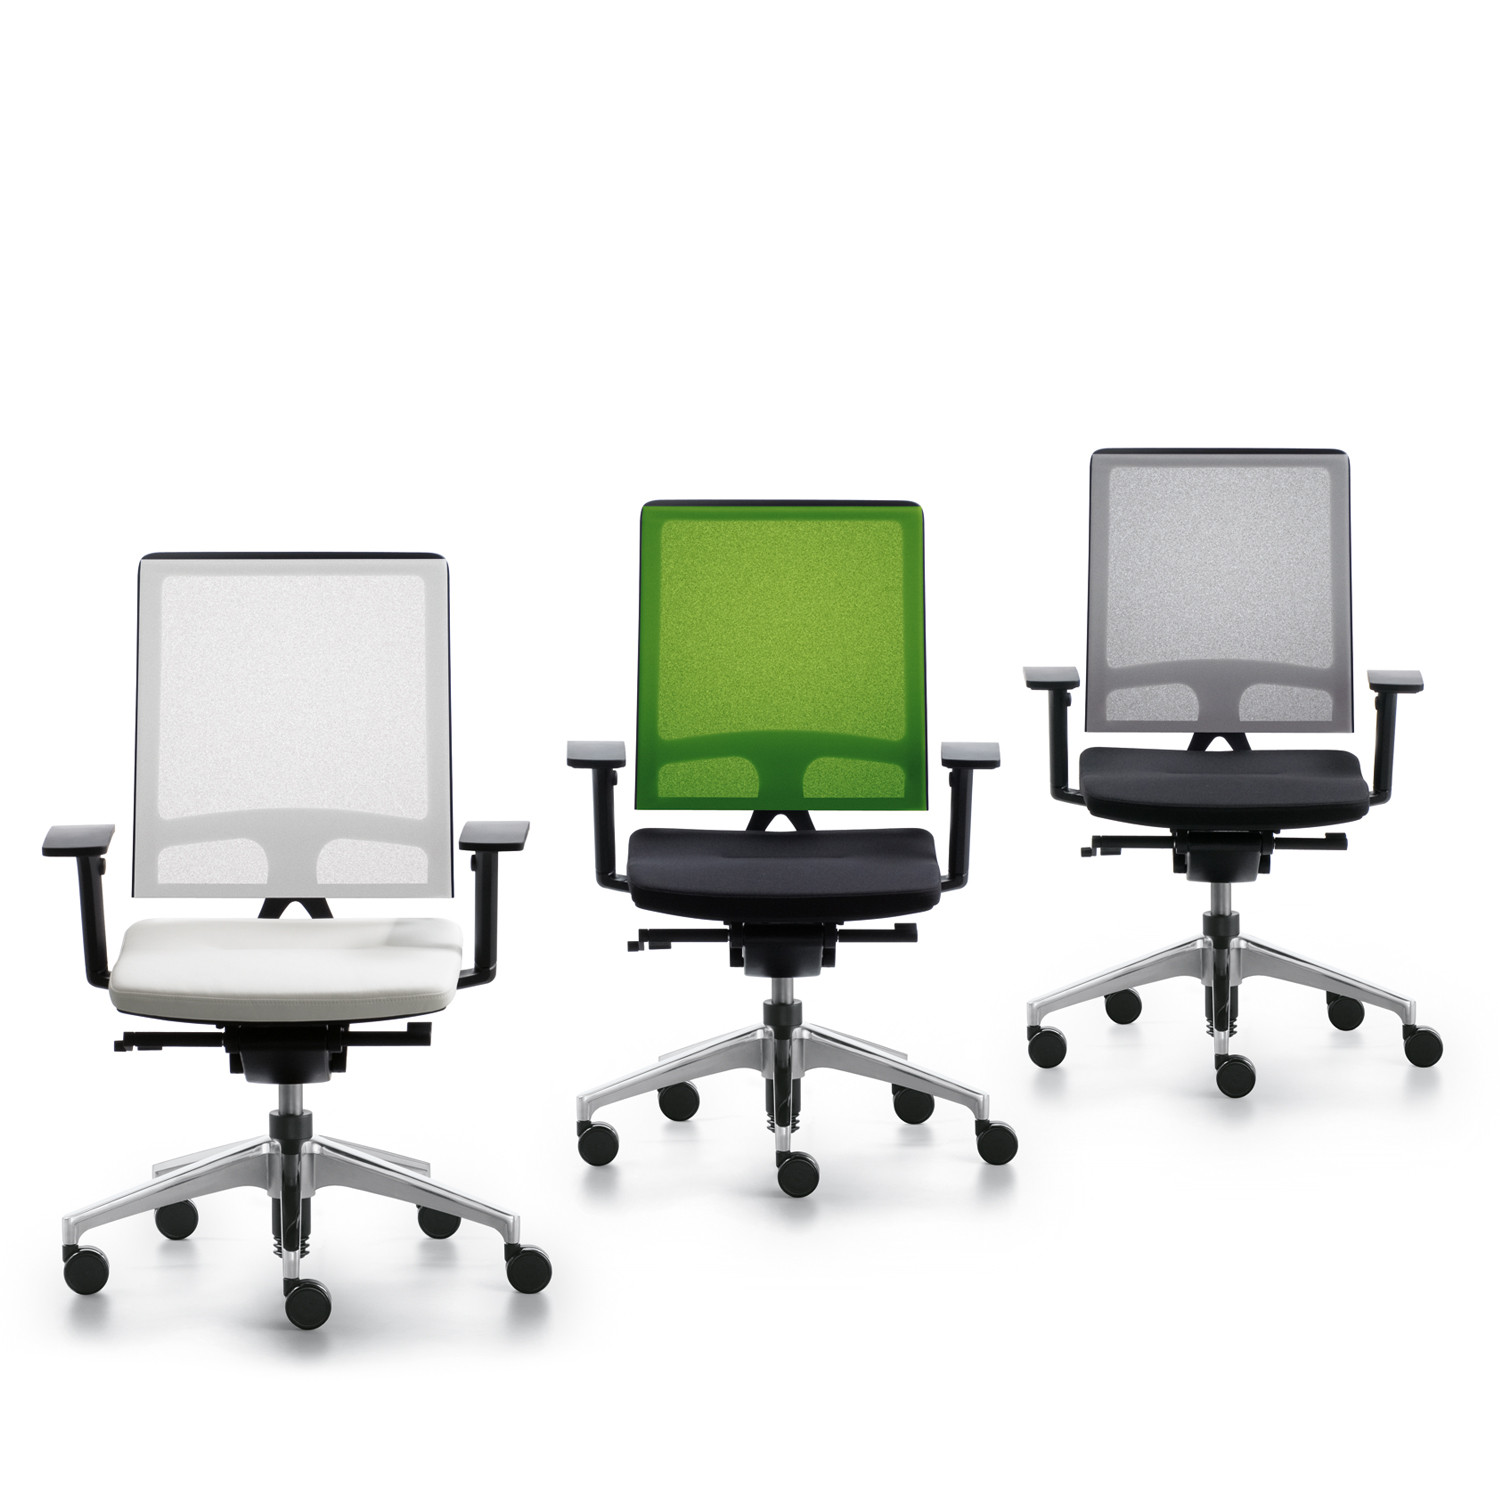 Office Furniture Bench: Open Mind Office Chairs